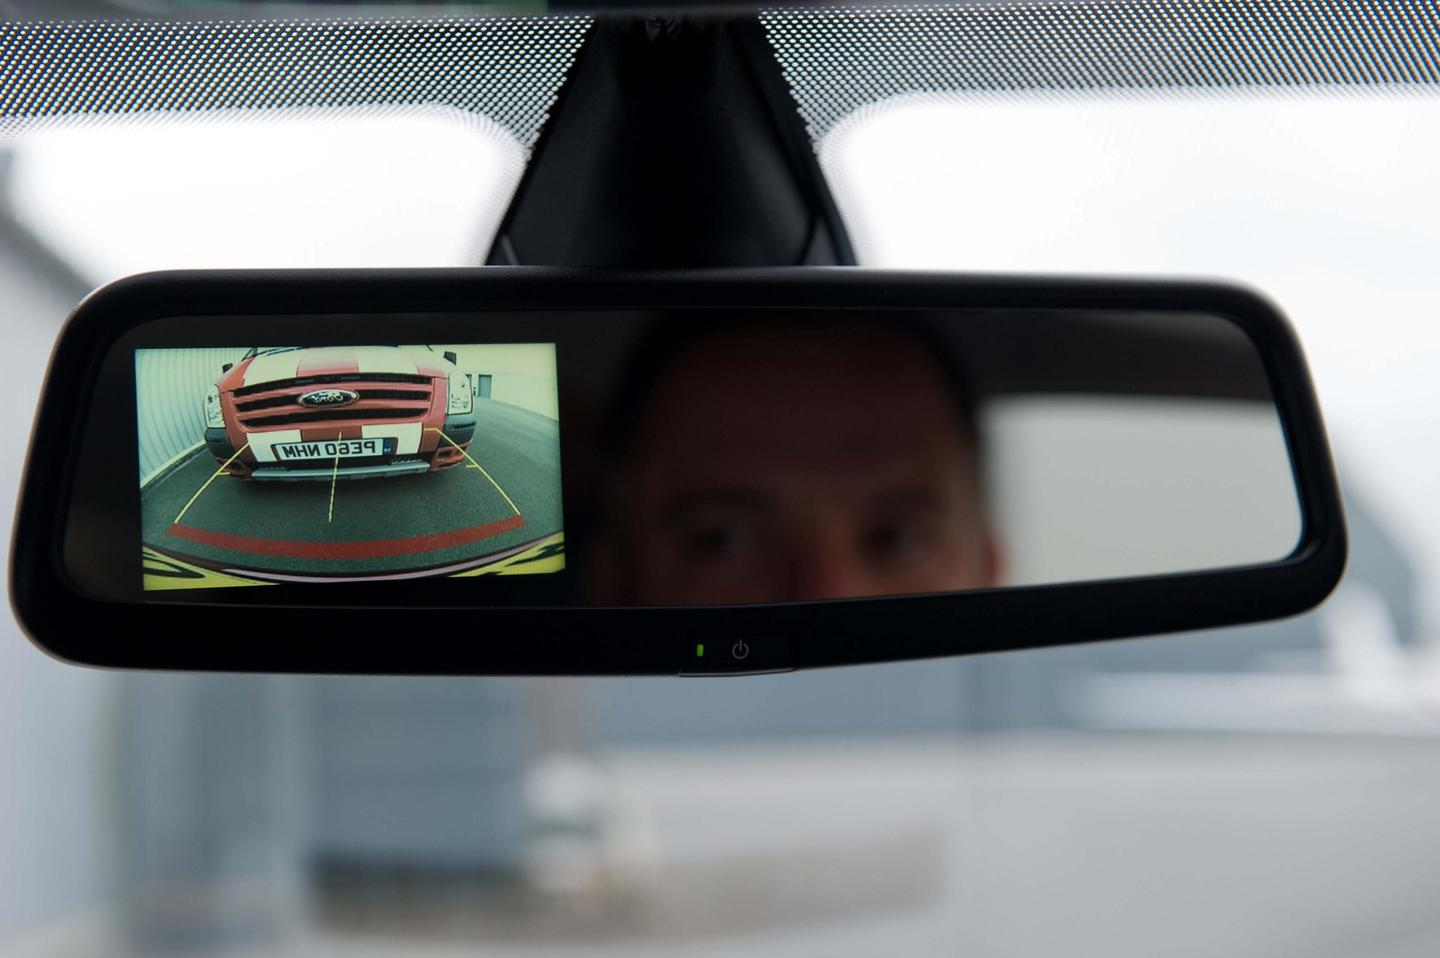 Mirror-mounted rearview camera now an option on Ford Fiesta in the U.K.